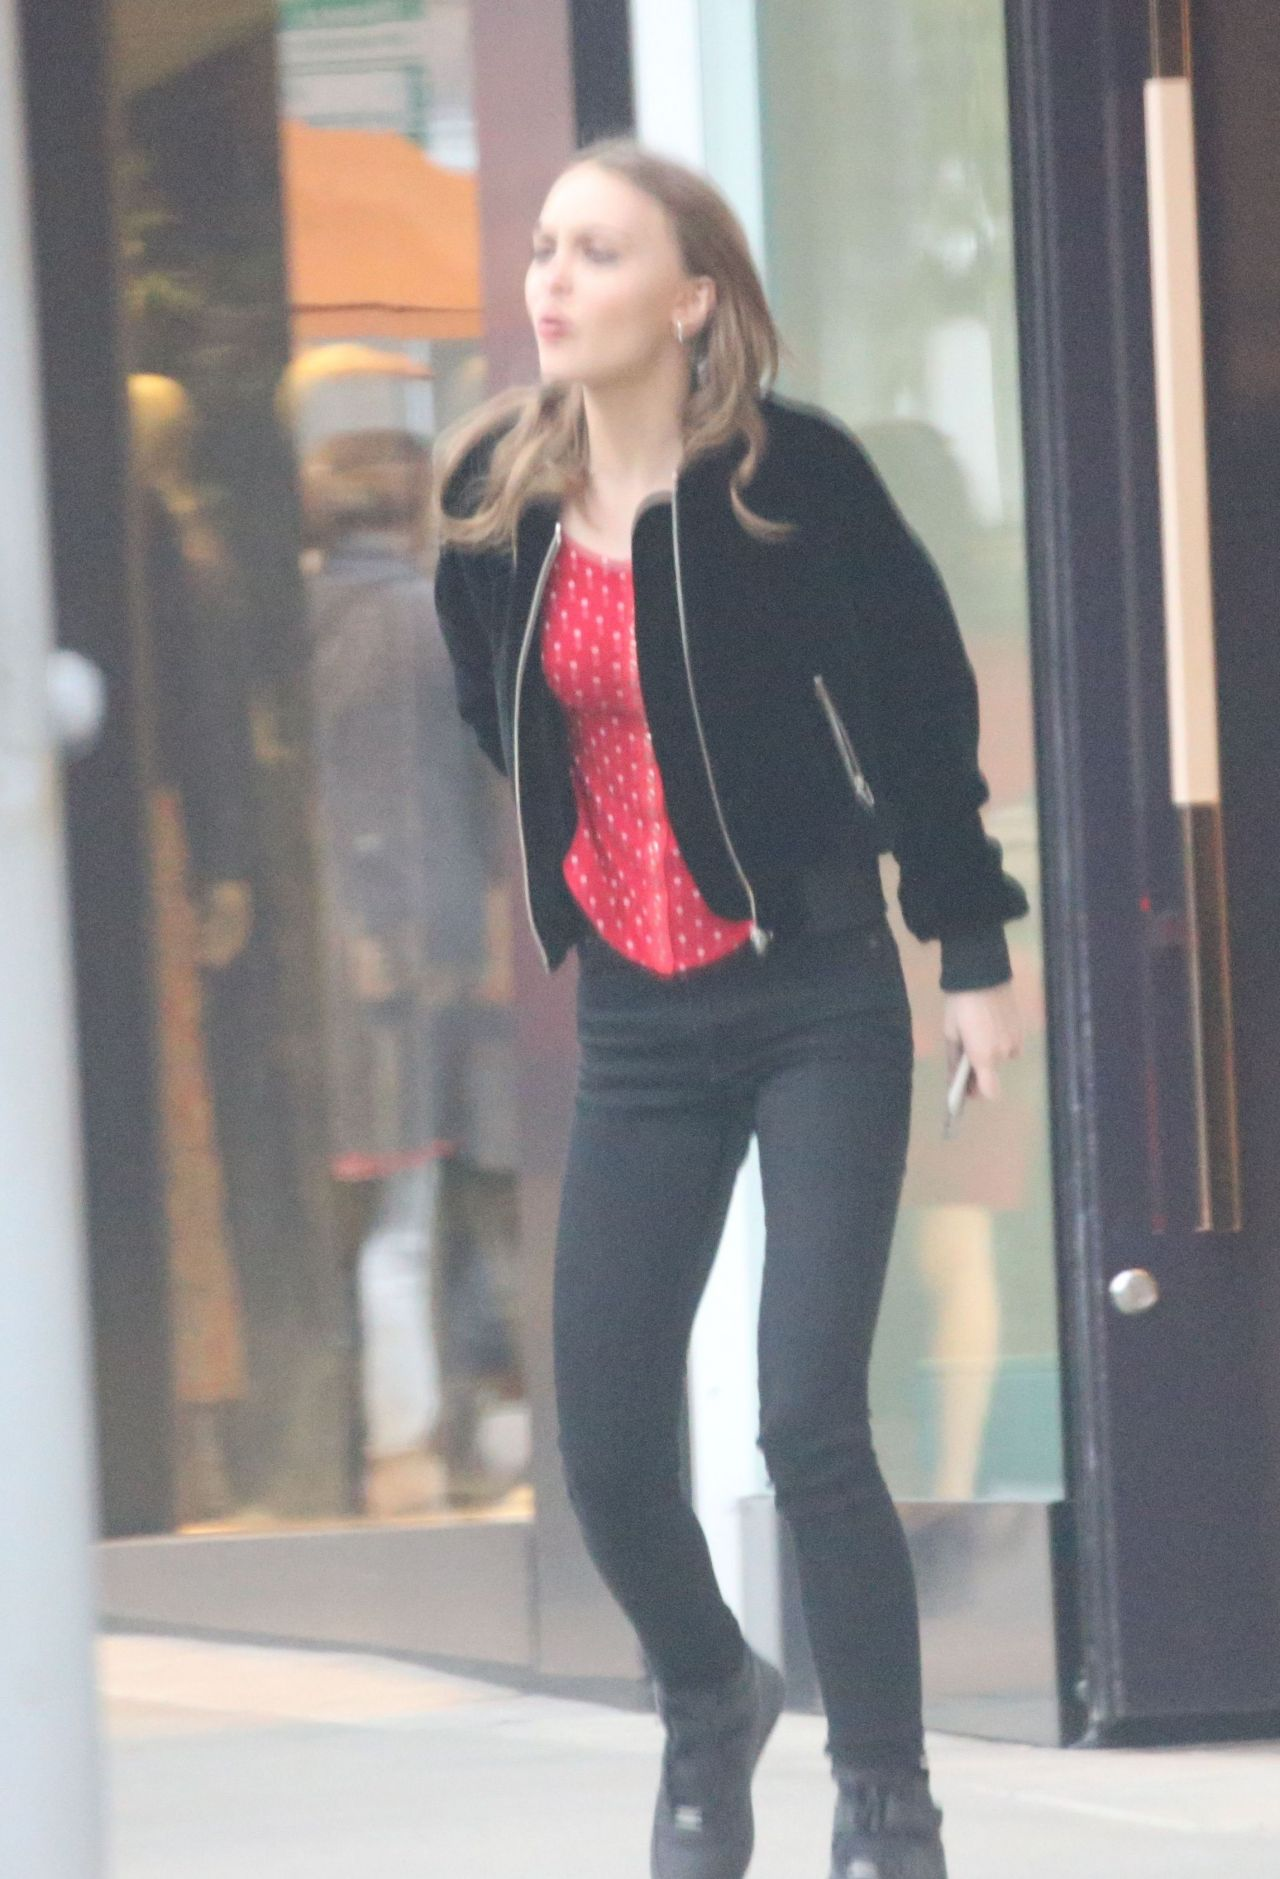 Lily rose depp leaves chanel after a shopping spree in beverly hills nudes (49 photos)